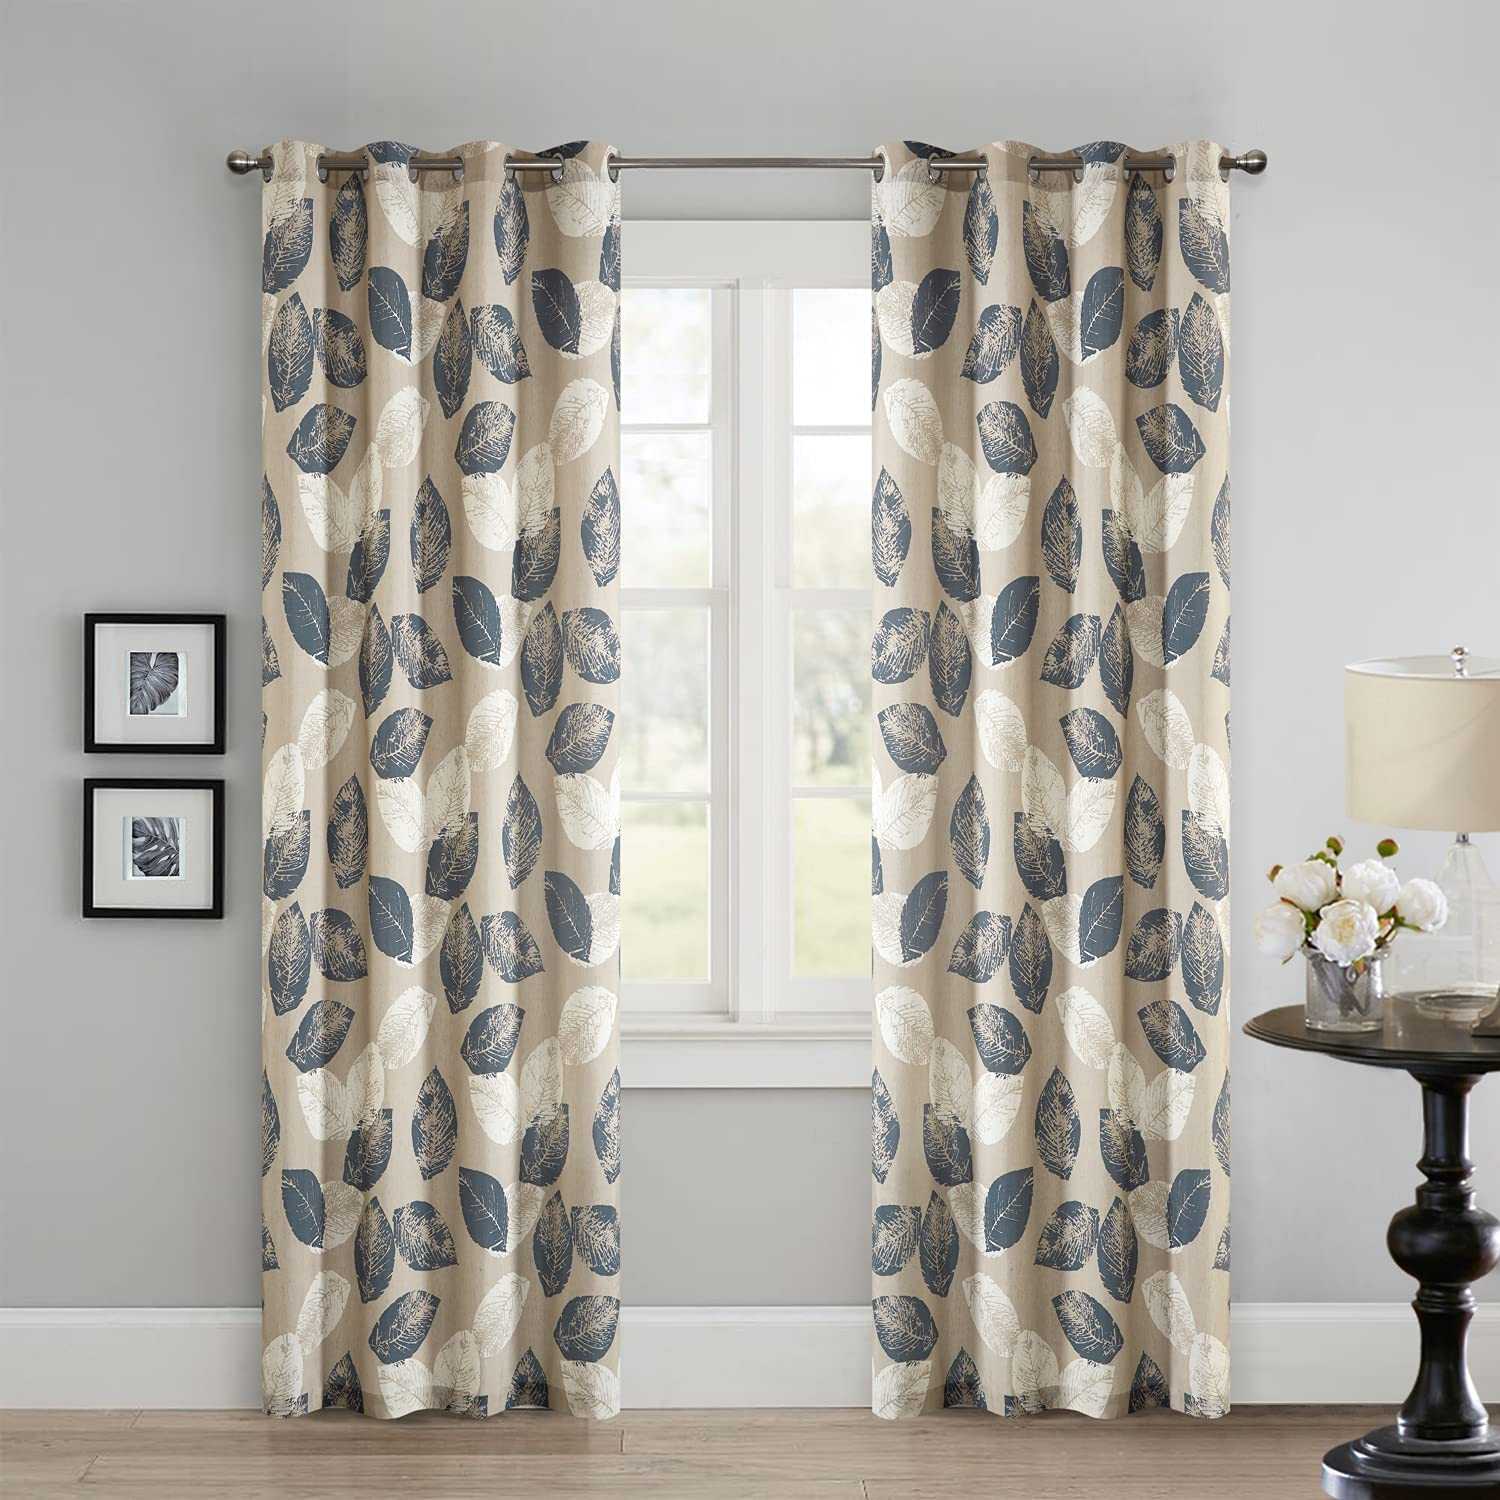 Hofamplly Mail order cheap Yellow Our shop OFFers the best service Blackout Curtains 102 Leaf Length Inch Pattern